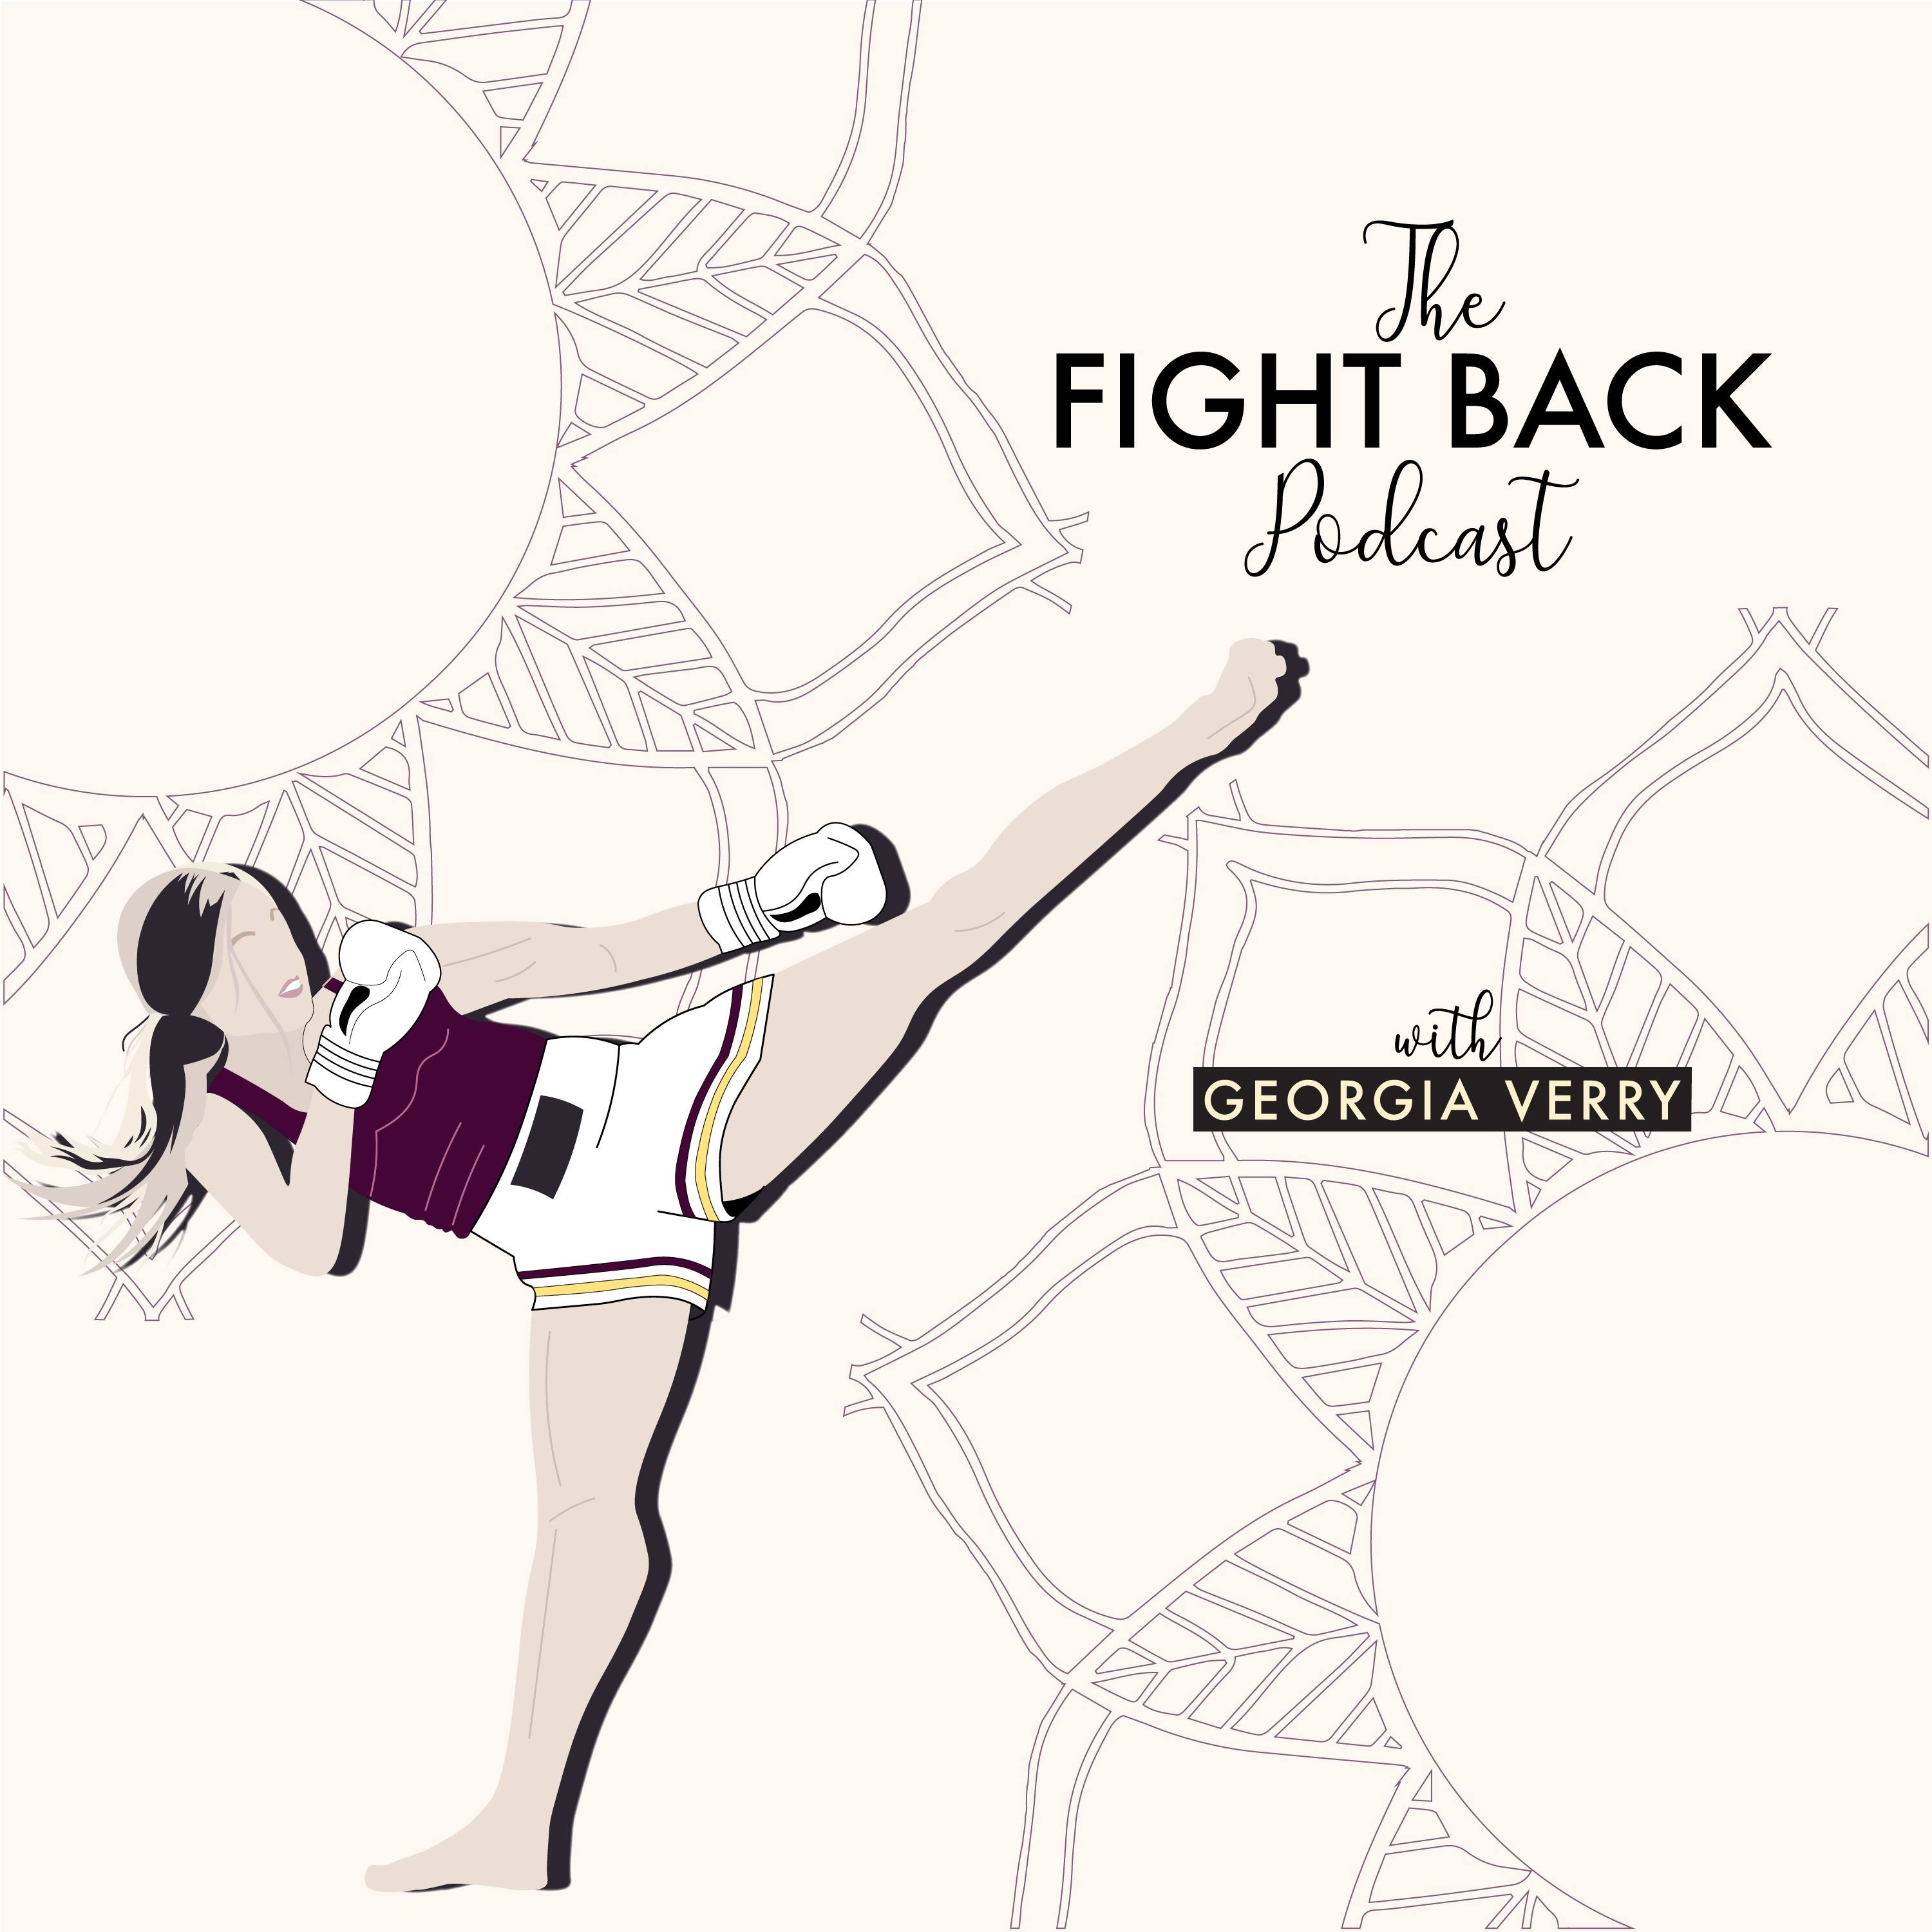 The Fight Back Podcast